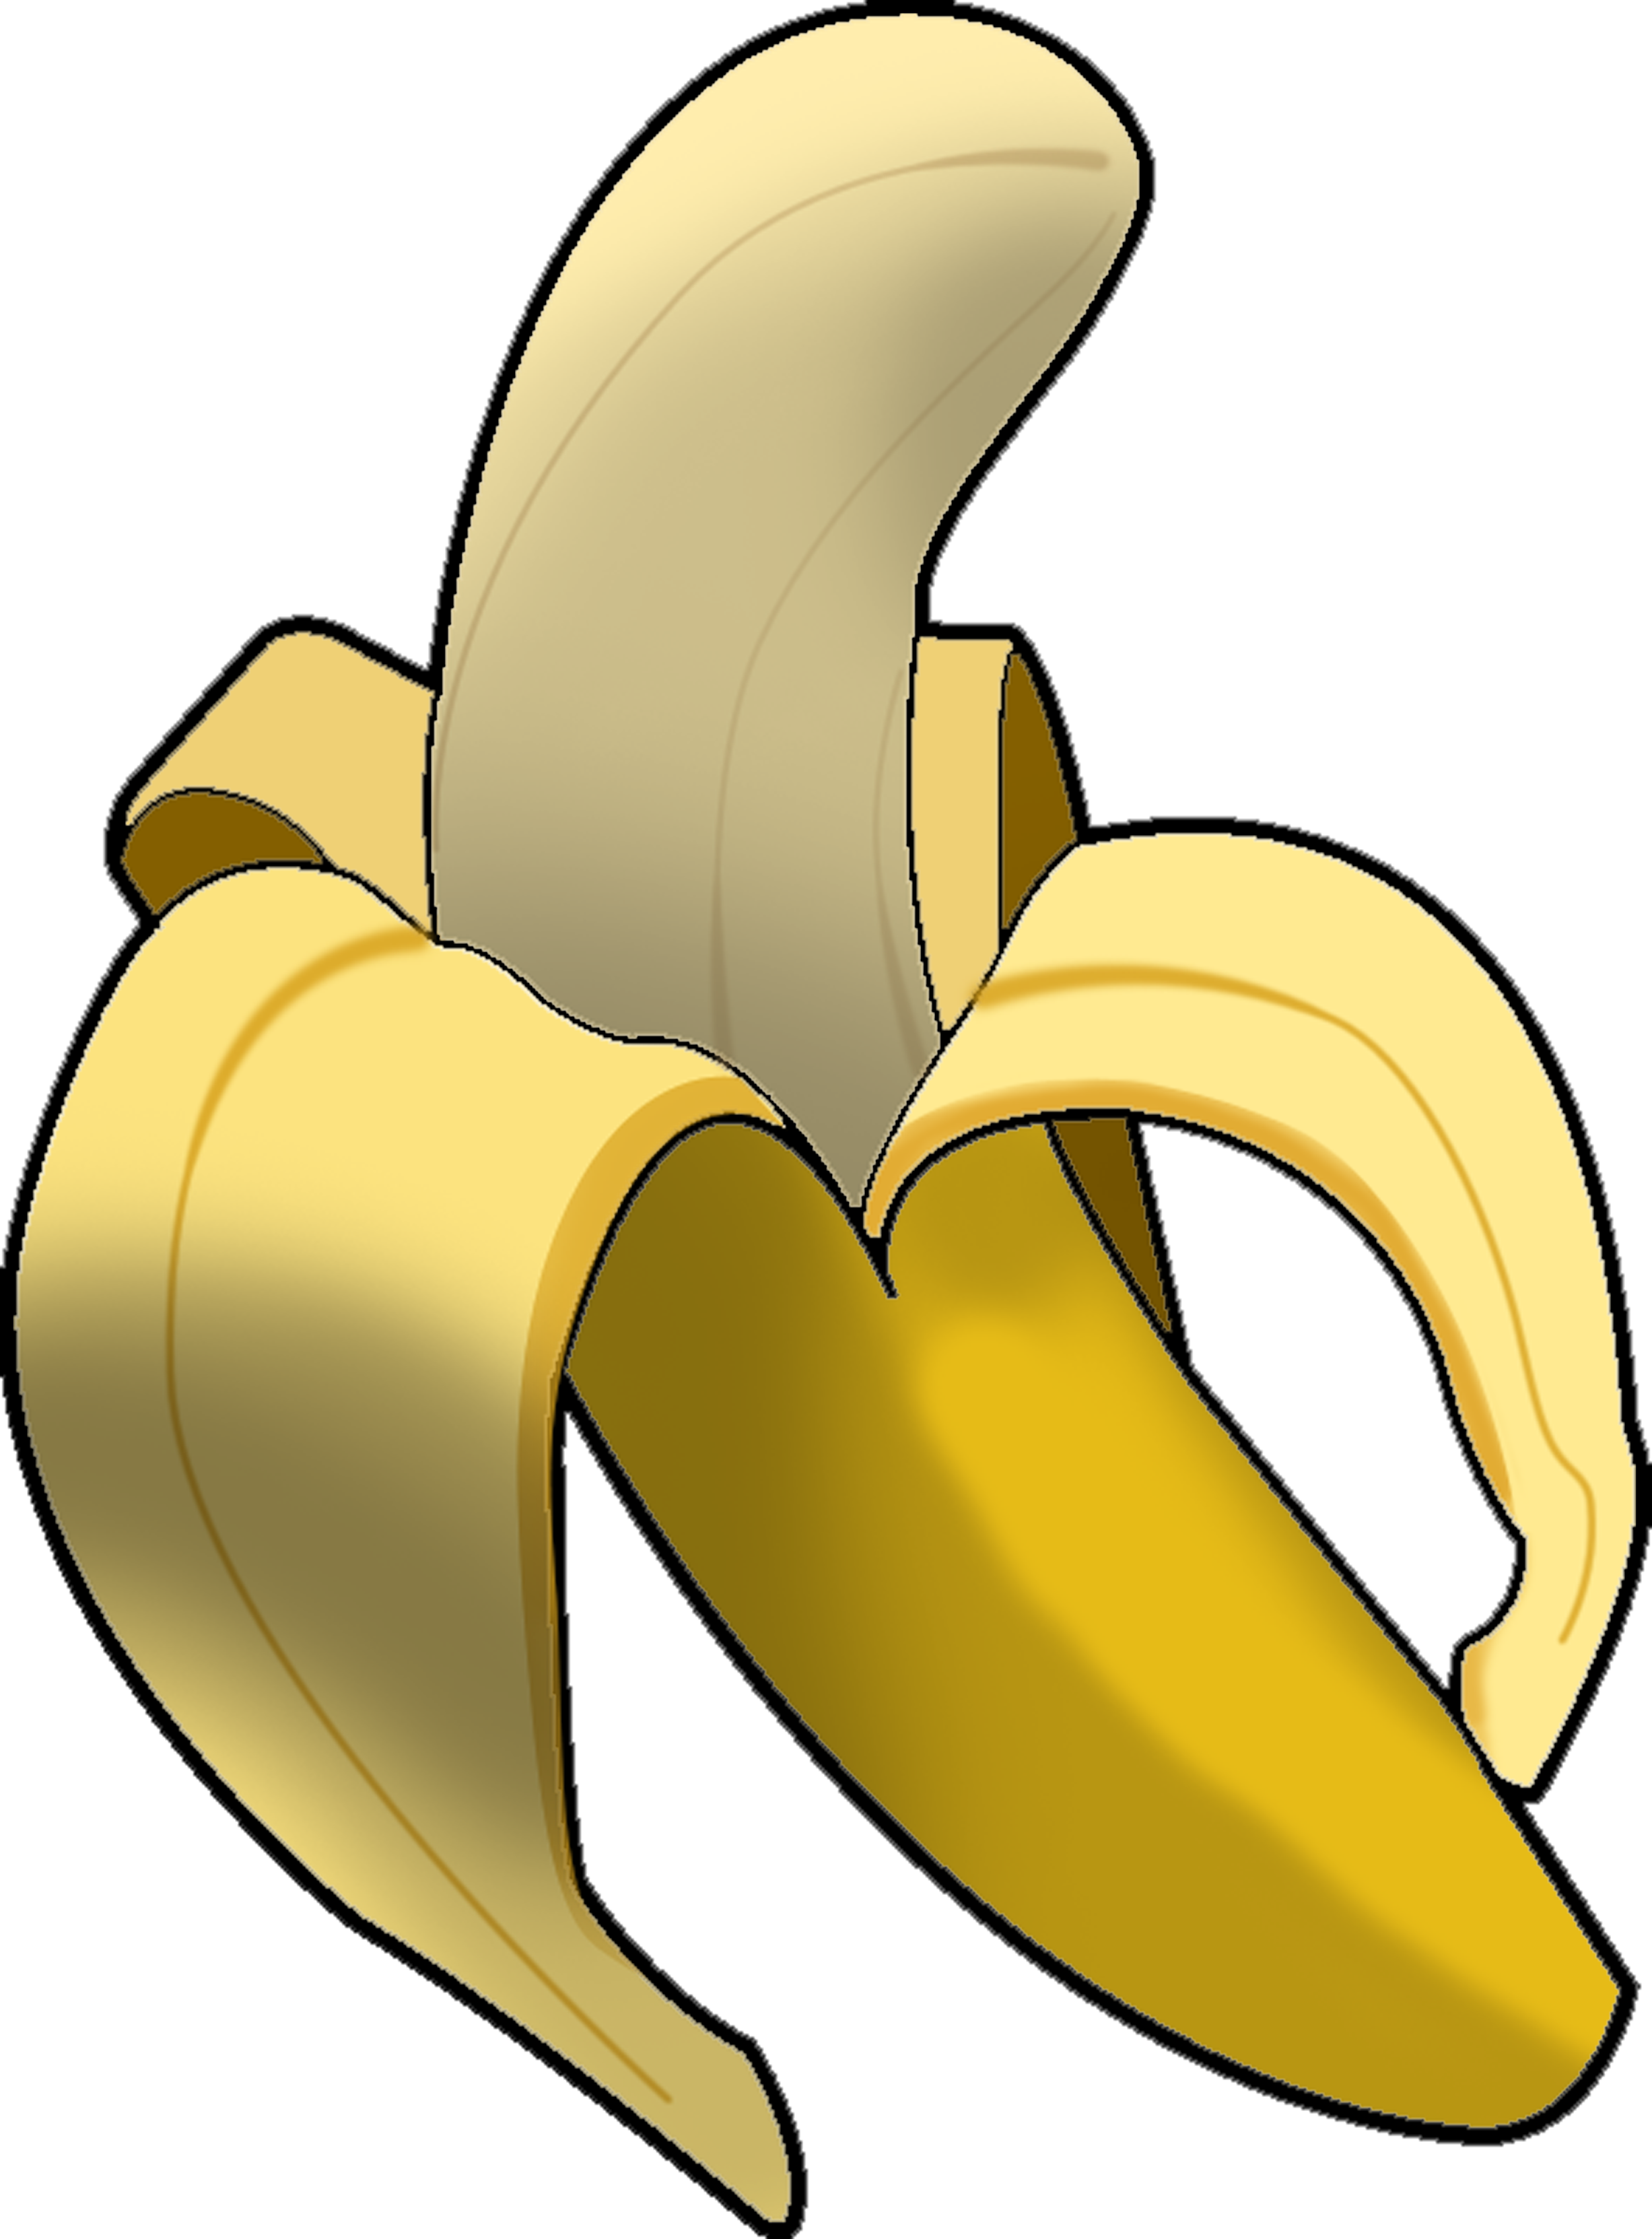 Banana clip art Free vector in Open office drawing.